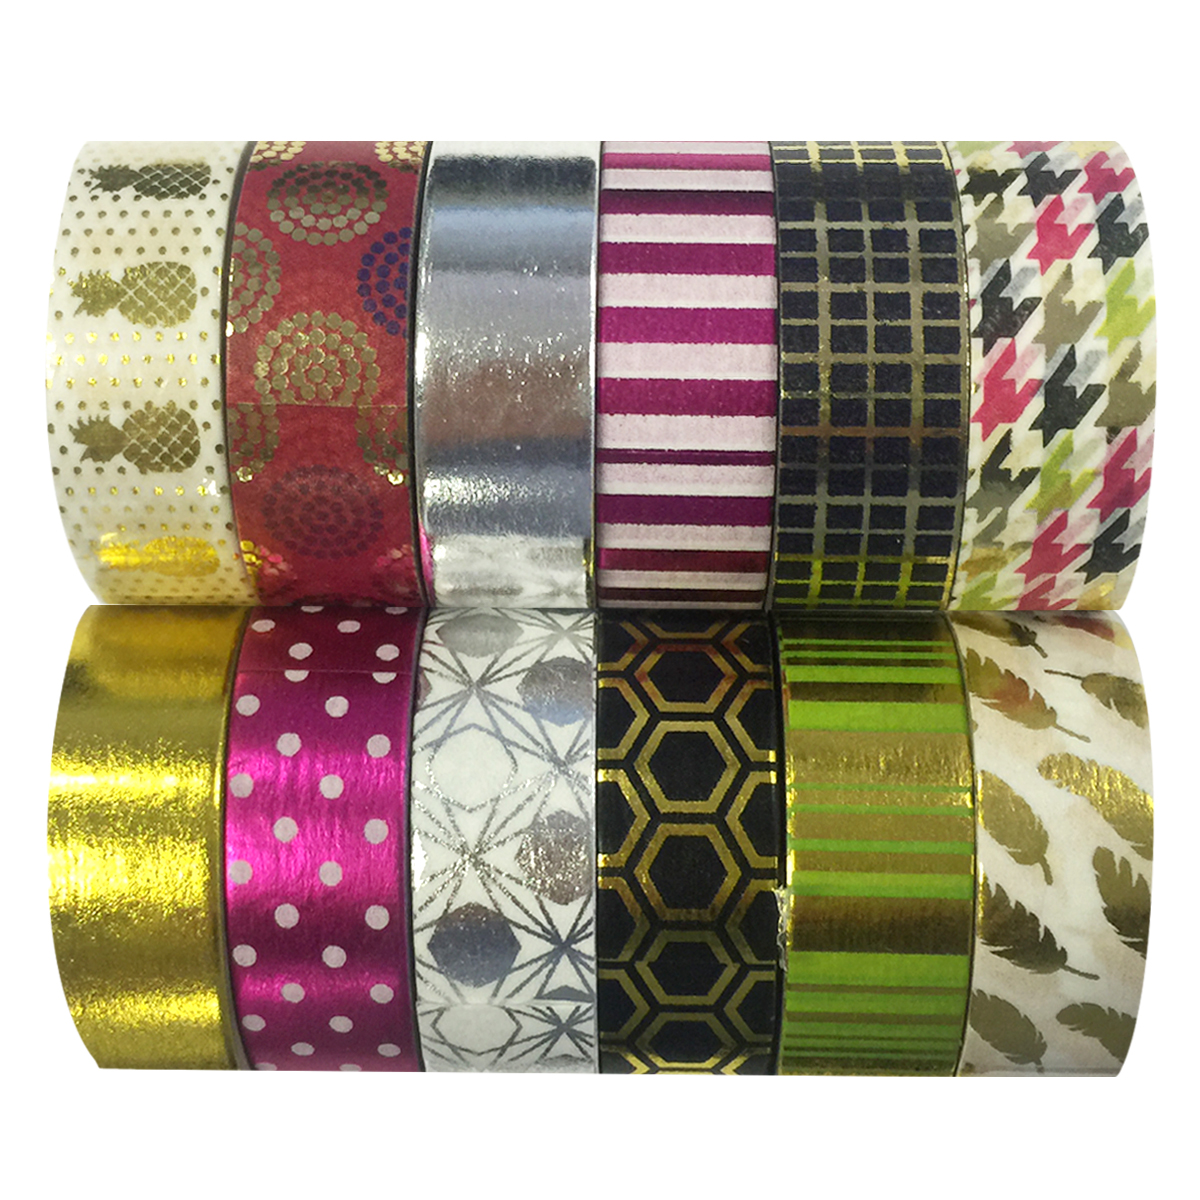 Wrapables® Washi Tapes Decorative Masking Tapes, Set of 12, ADSET63